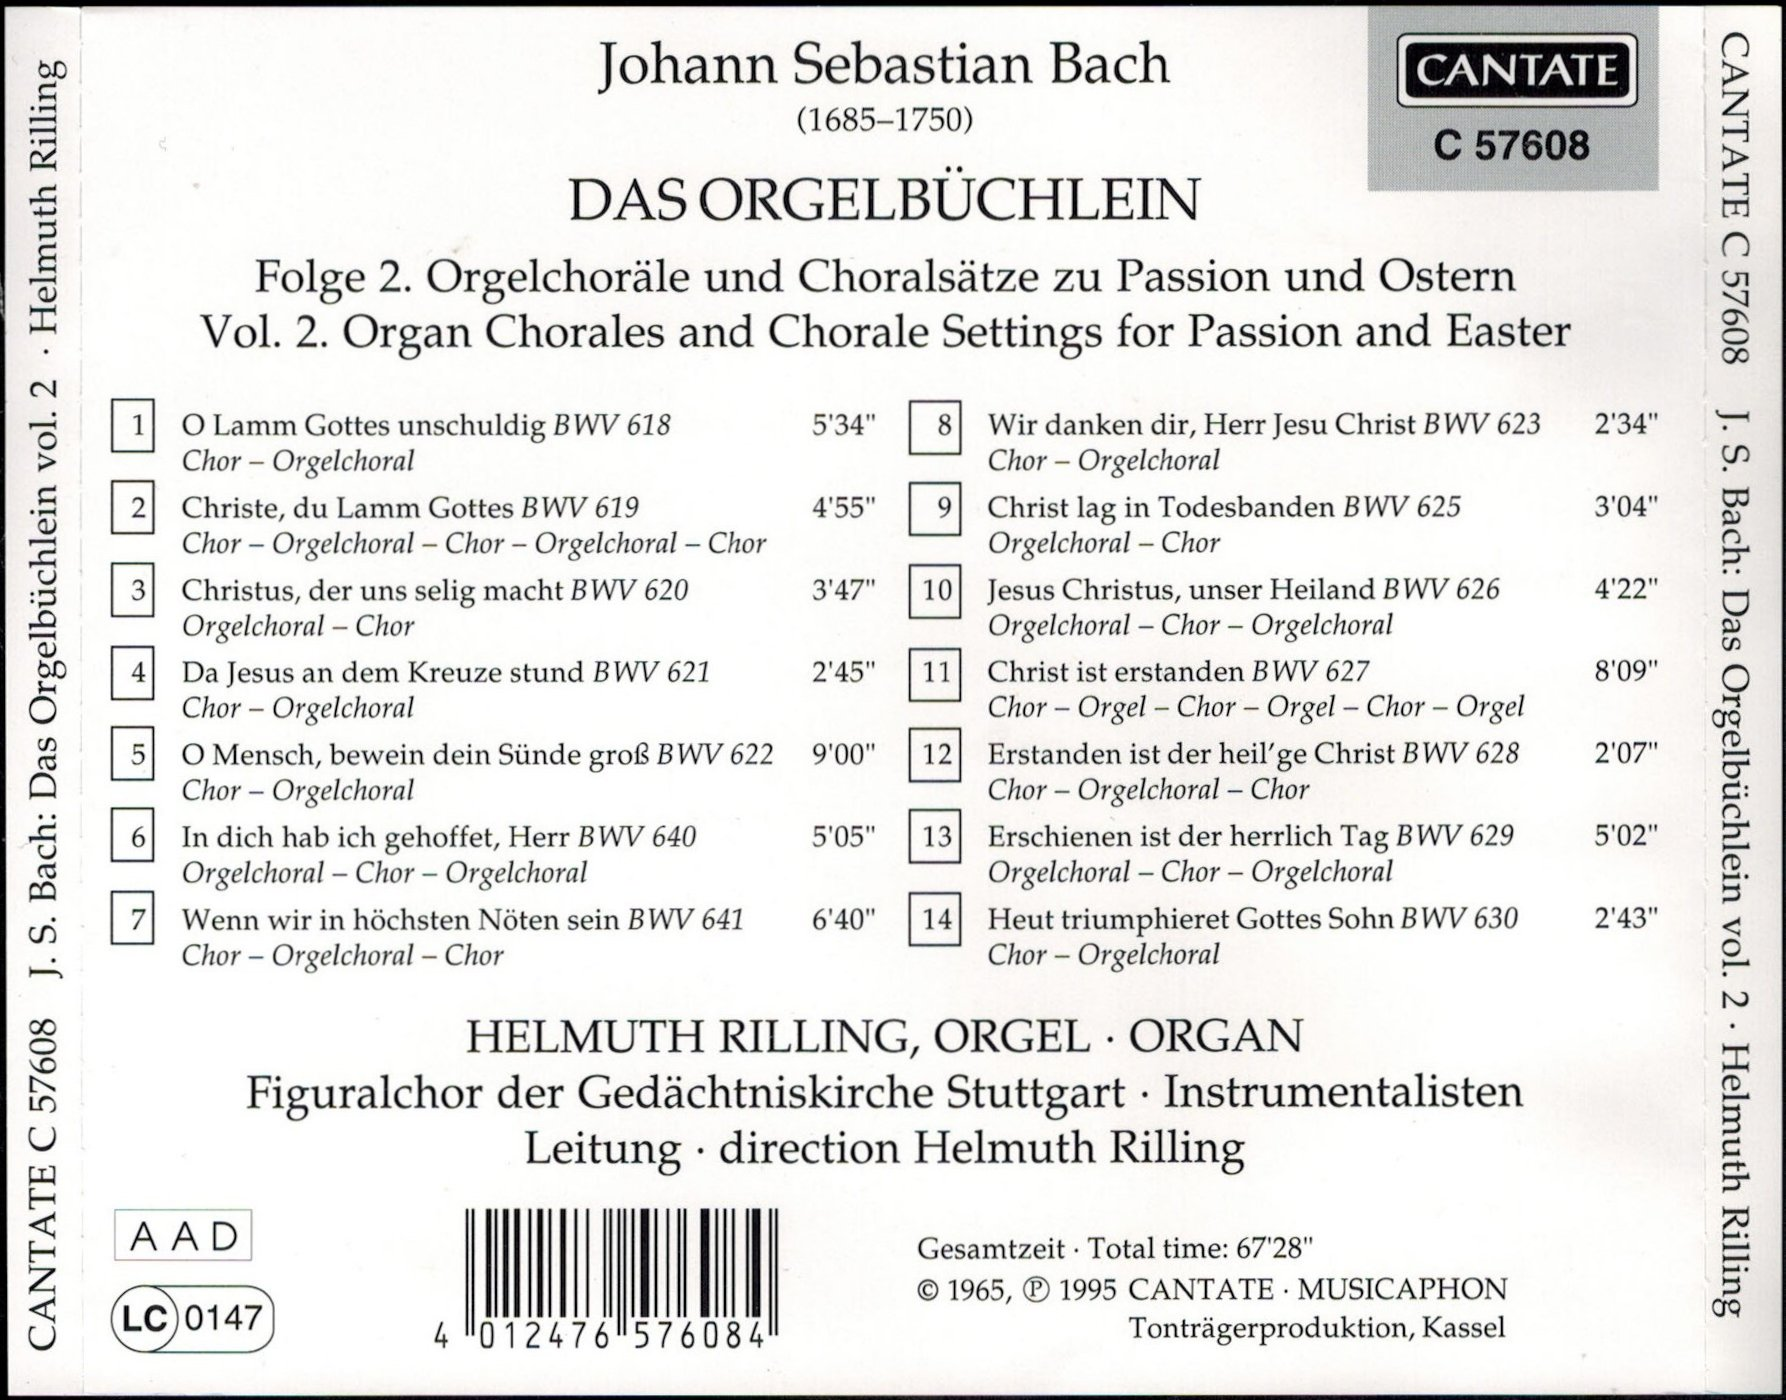 J.S. Bach: Das Orgelbüchlein II - Organ Chorales and Chorale settings for  Passion and Easter [CH-2]